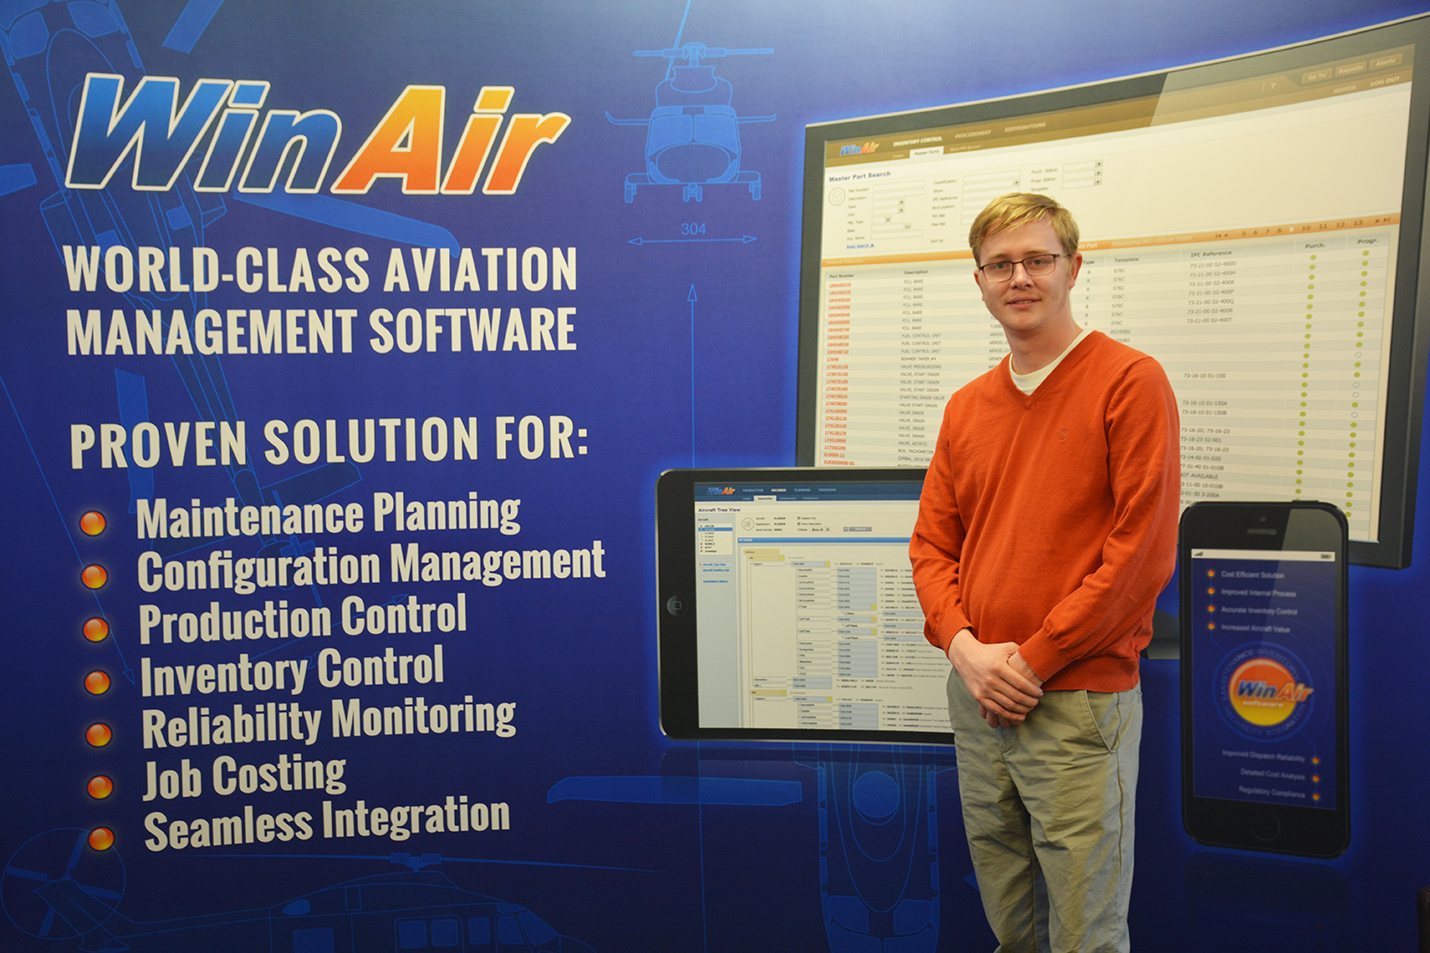 WinAir Commercial Manager Kyle Vergeer - fixed-wing image with text